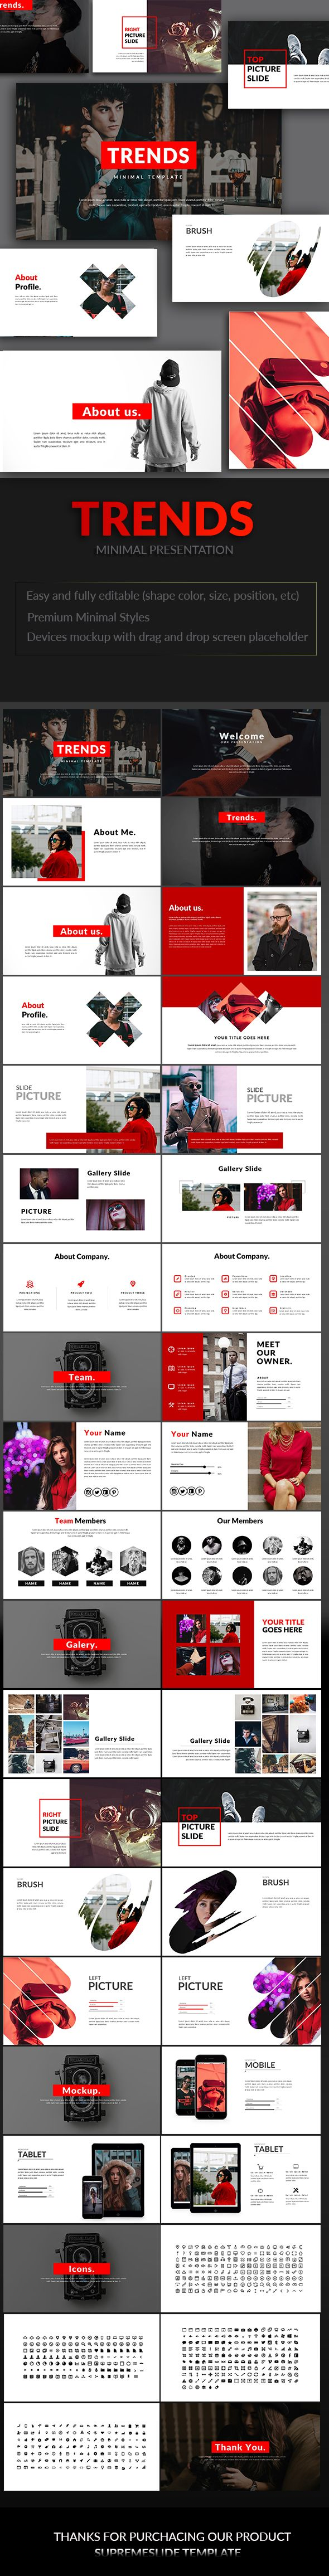 Trends Powerpoint Template - PowerPoint Templates Presentation Templates